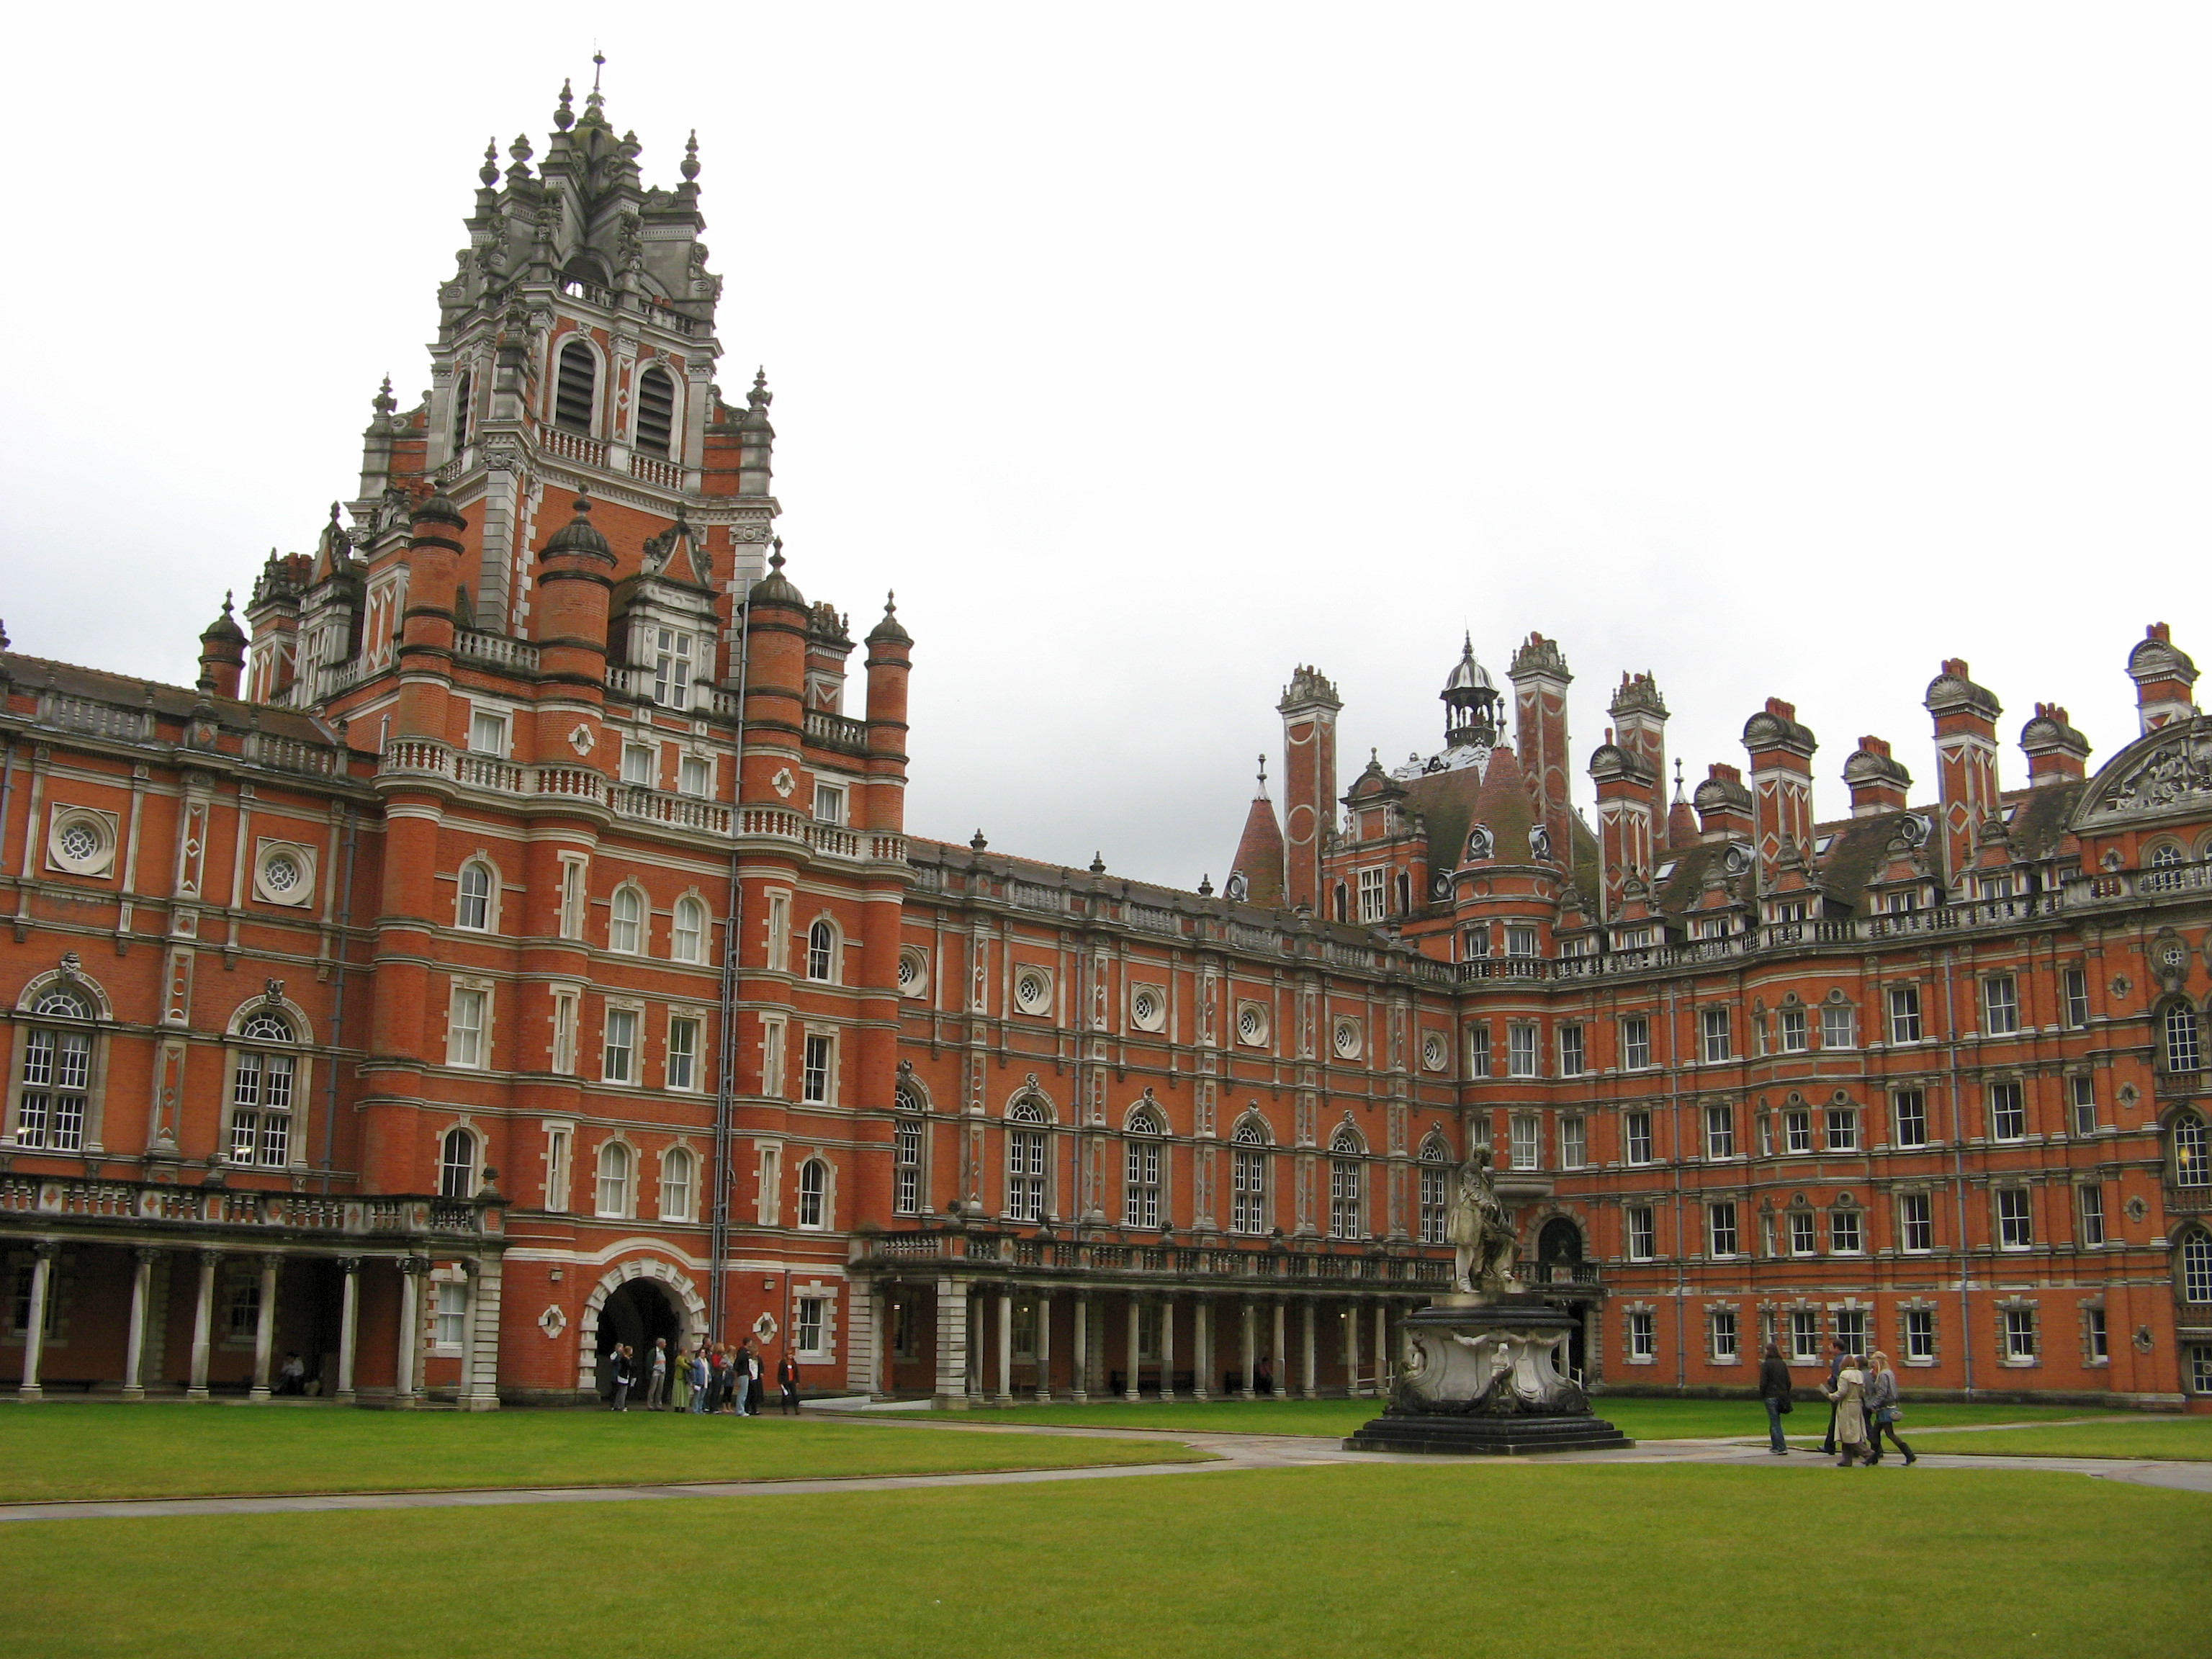 https://upload.wikimedia.org/wikipedia/commons/f/fd/Founder%27s_Building%2C_Royal_Holloway%2C_south_quad.jpg